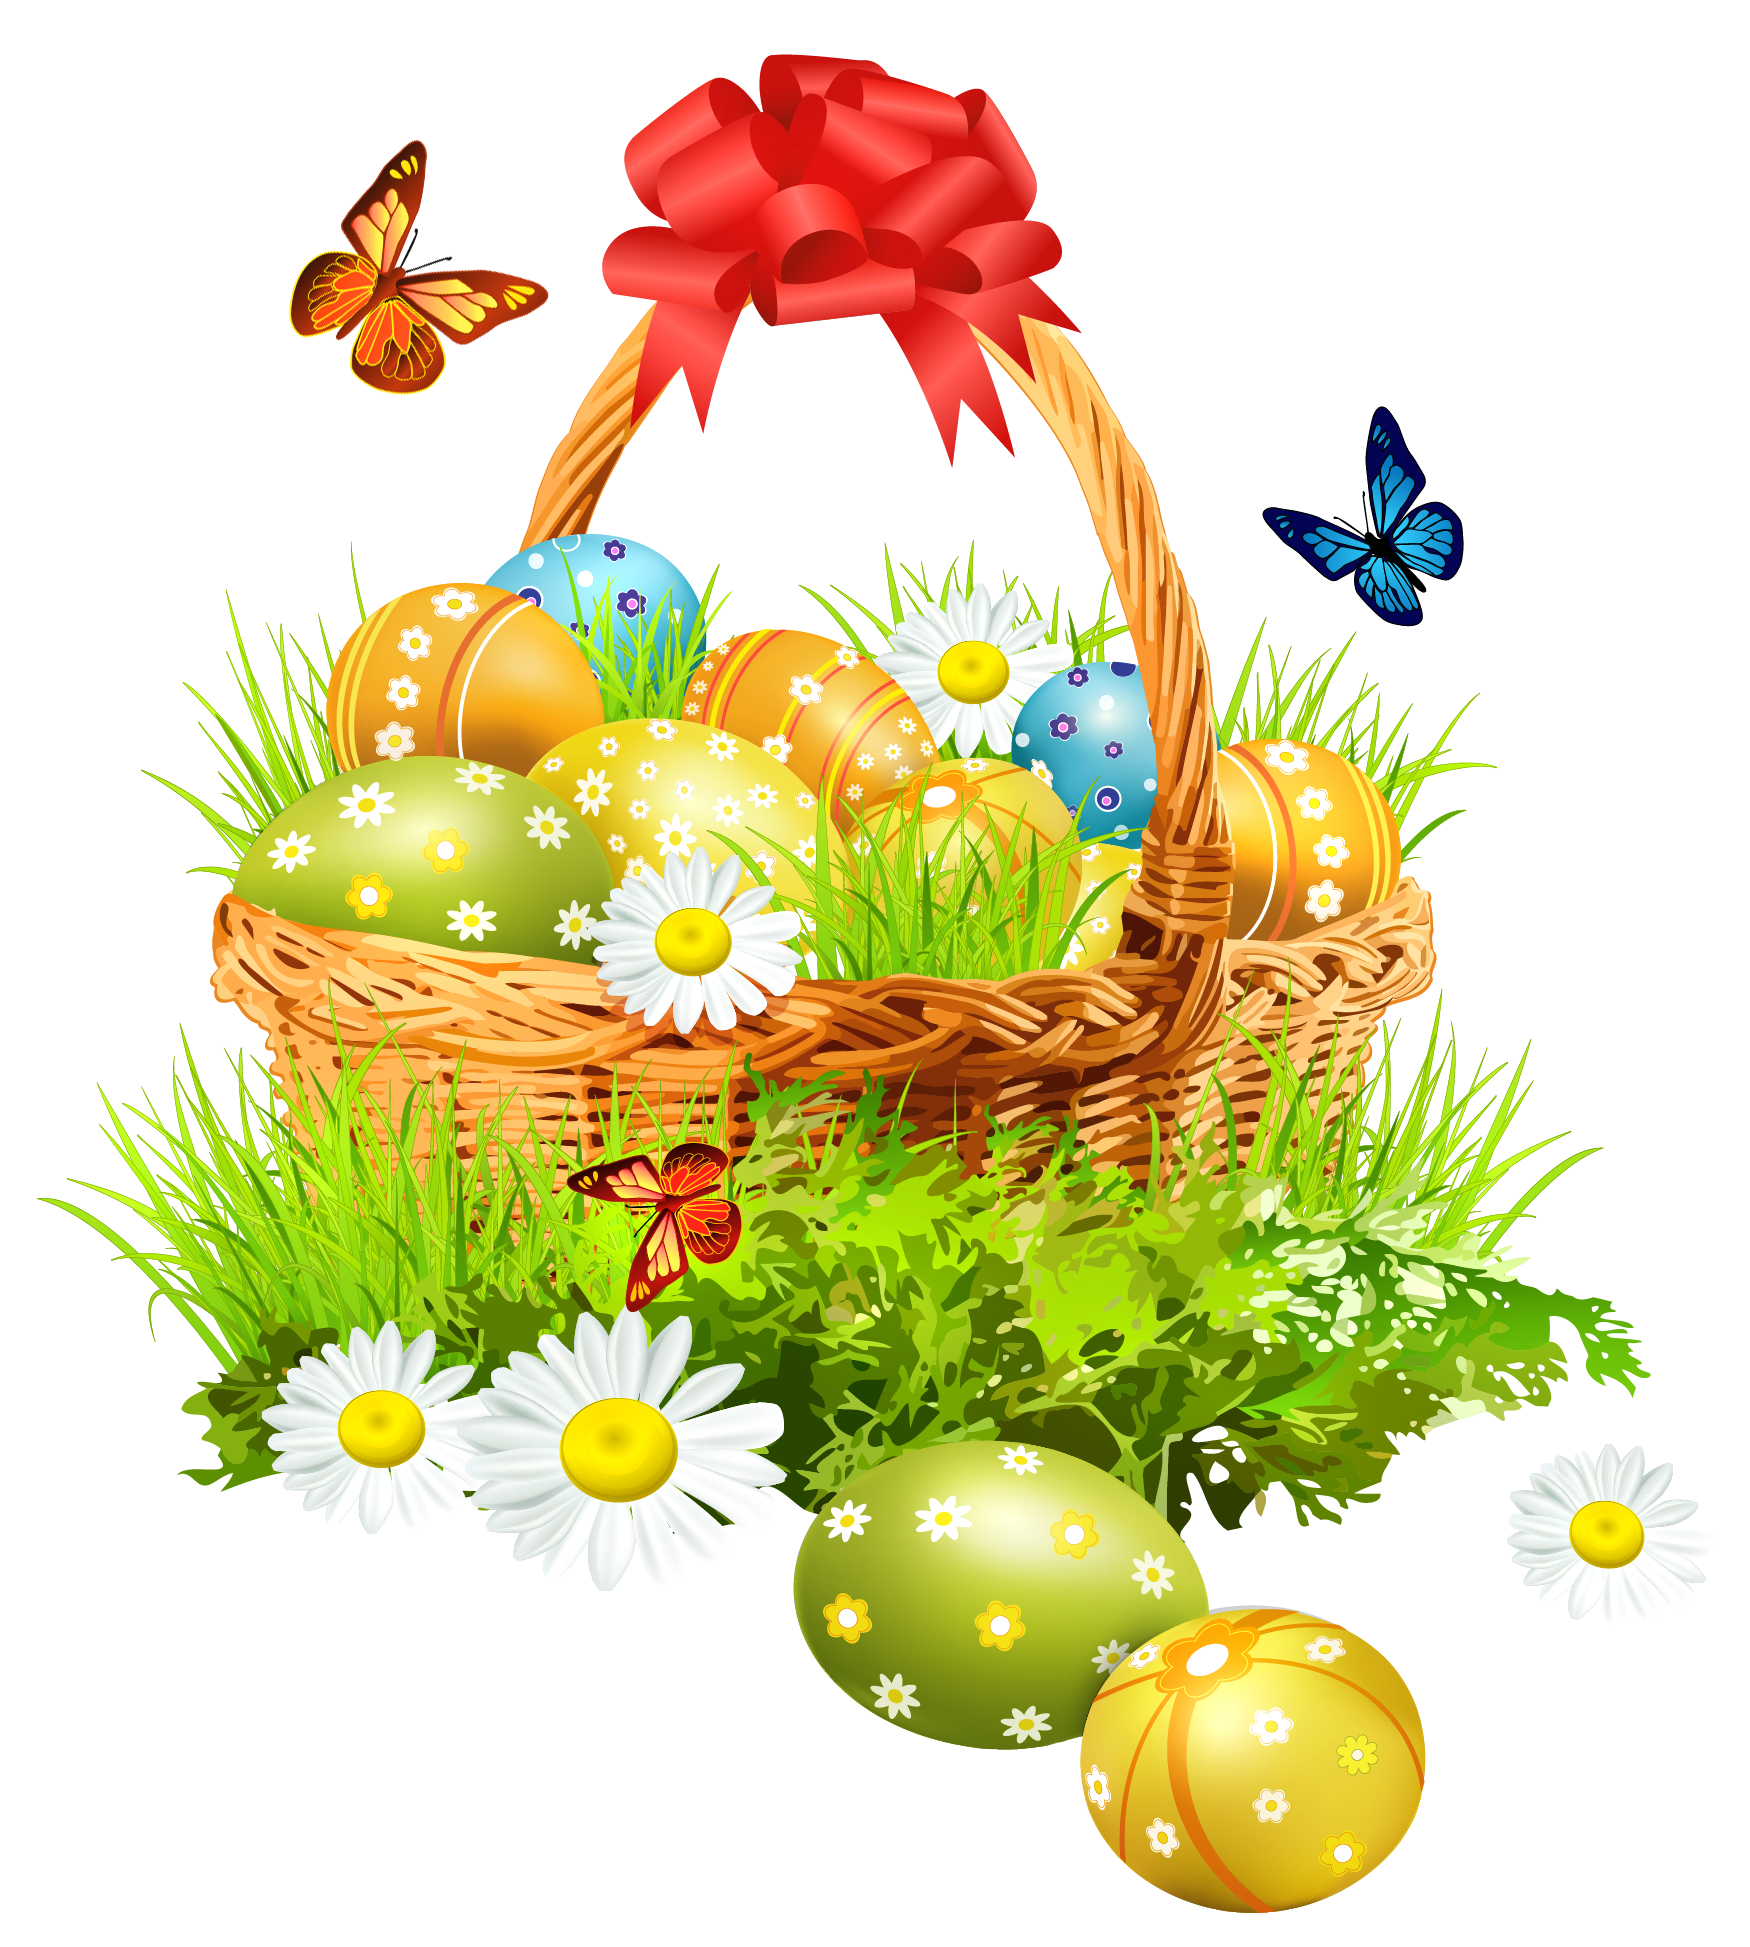 Easter png images. Basket with eggsand butterflies